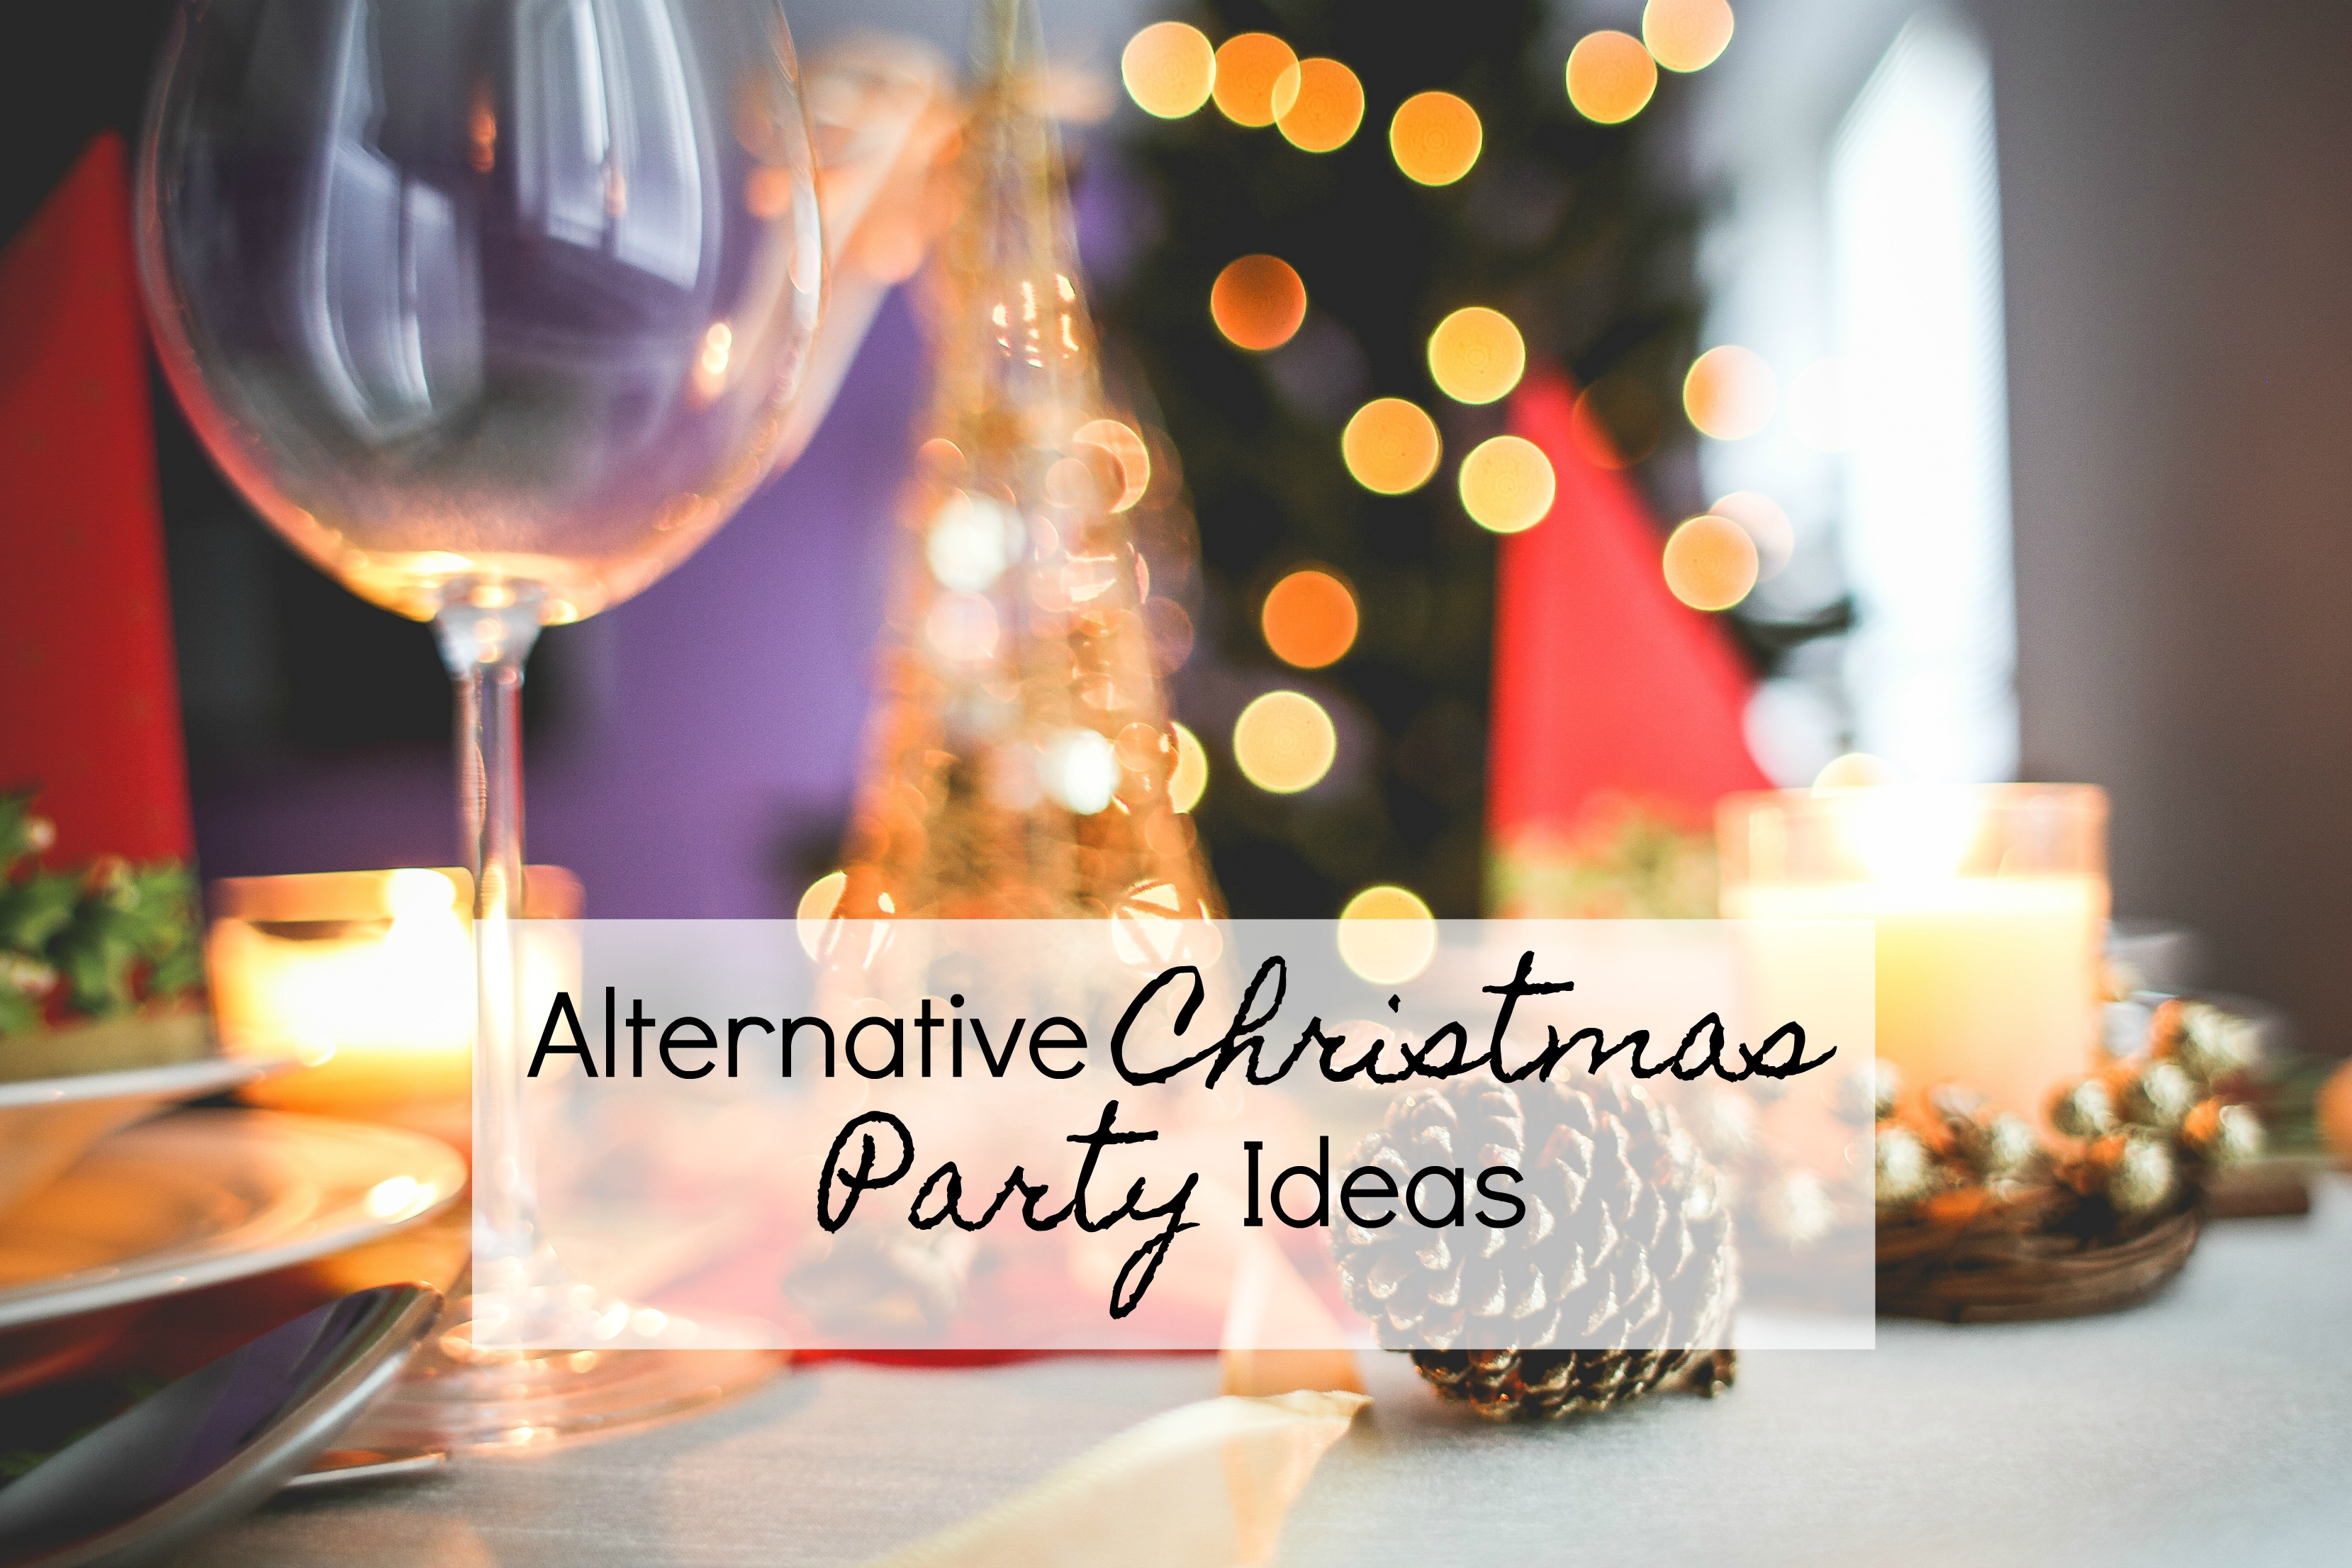 Alternative Christmas Party Ideas